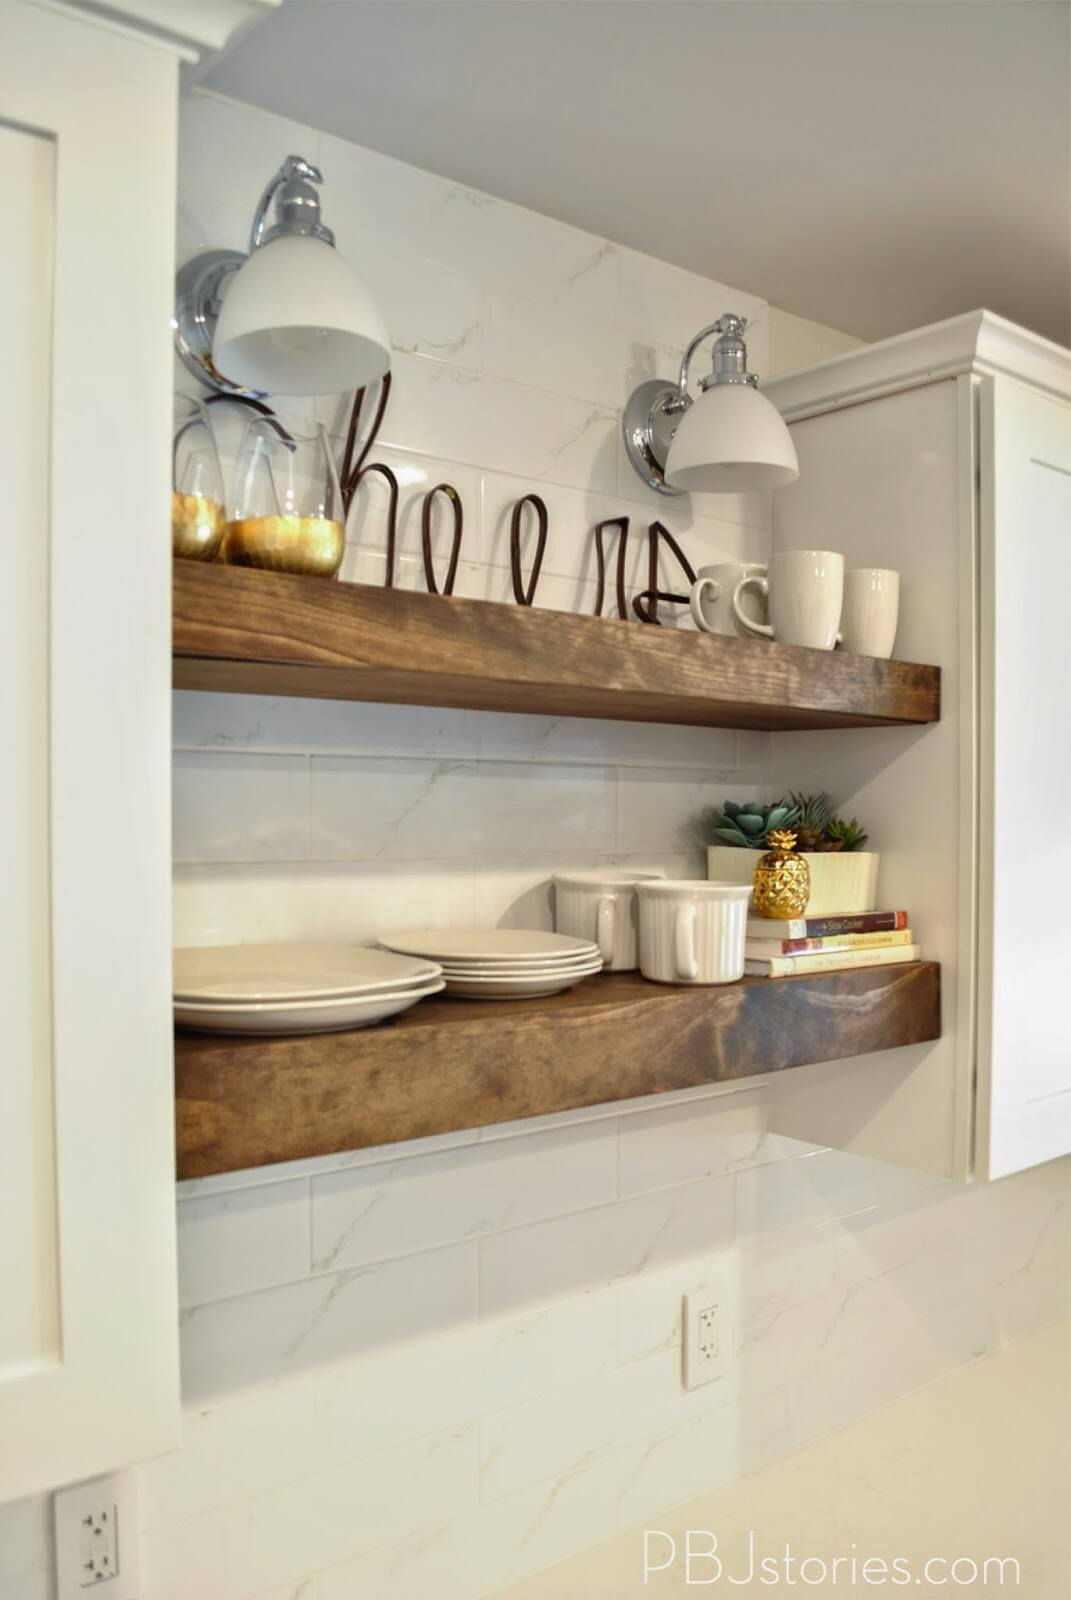 best diy floating shelf ideas and designs for homebnc modern kitchen shelves comfy breakfast nook display bracket media wardrobe storage closet long desk wood farmhouse barn door